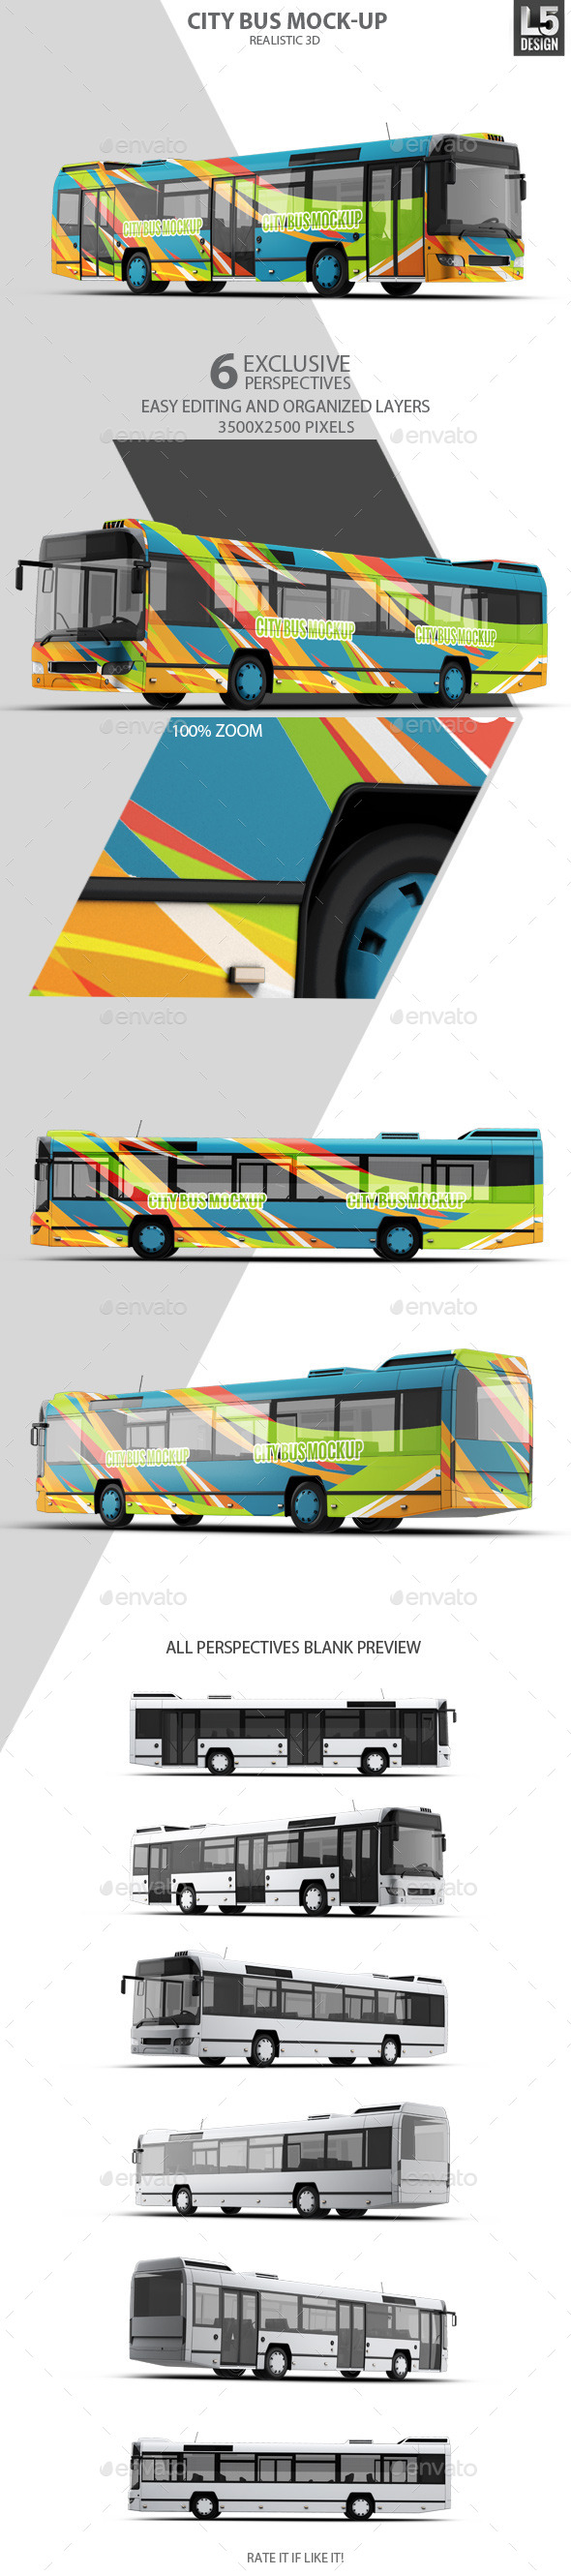 City Bus Mock-Up